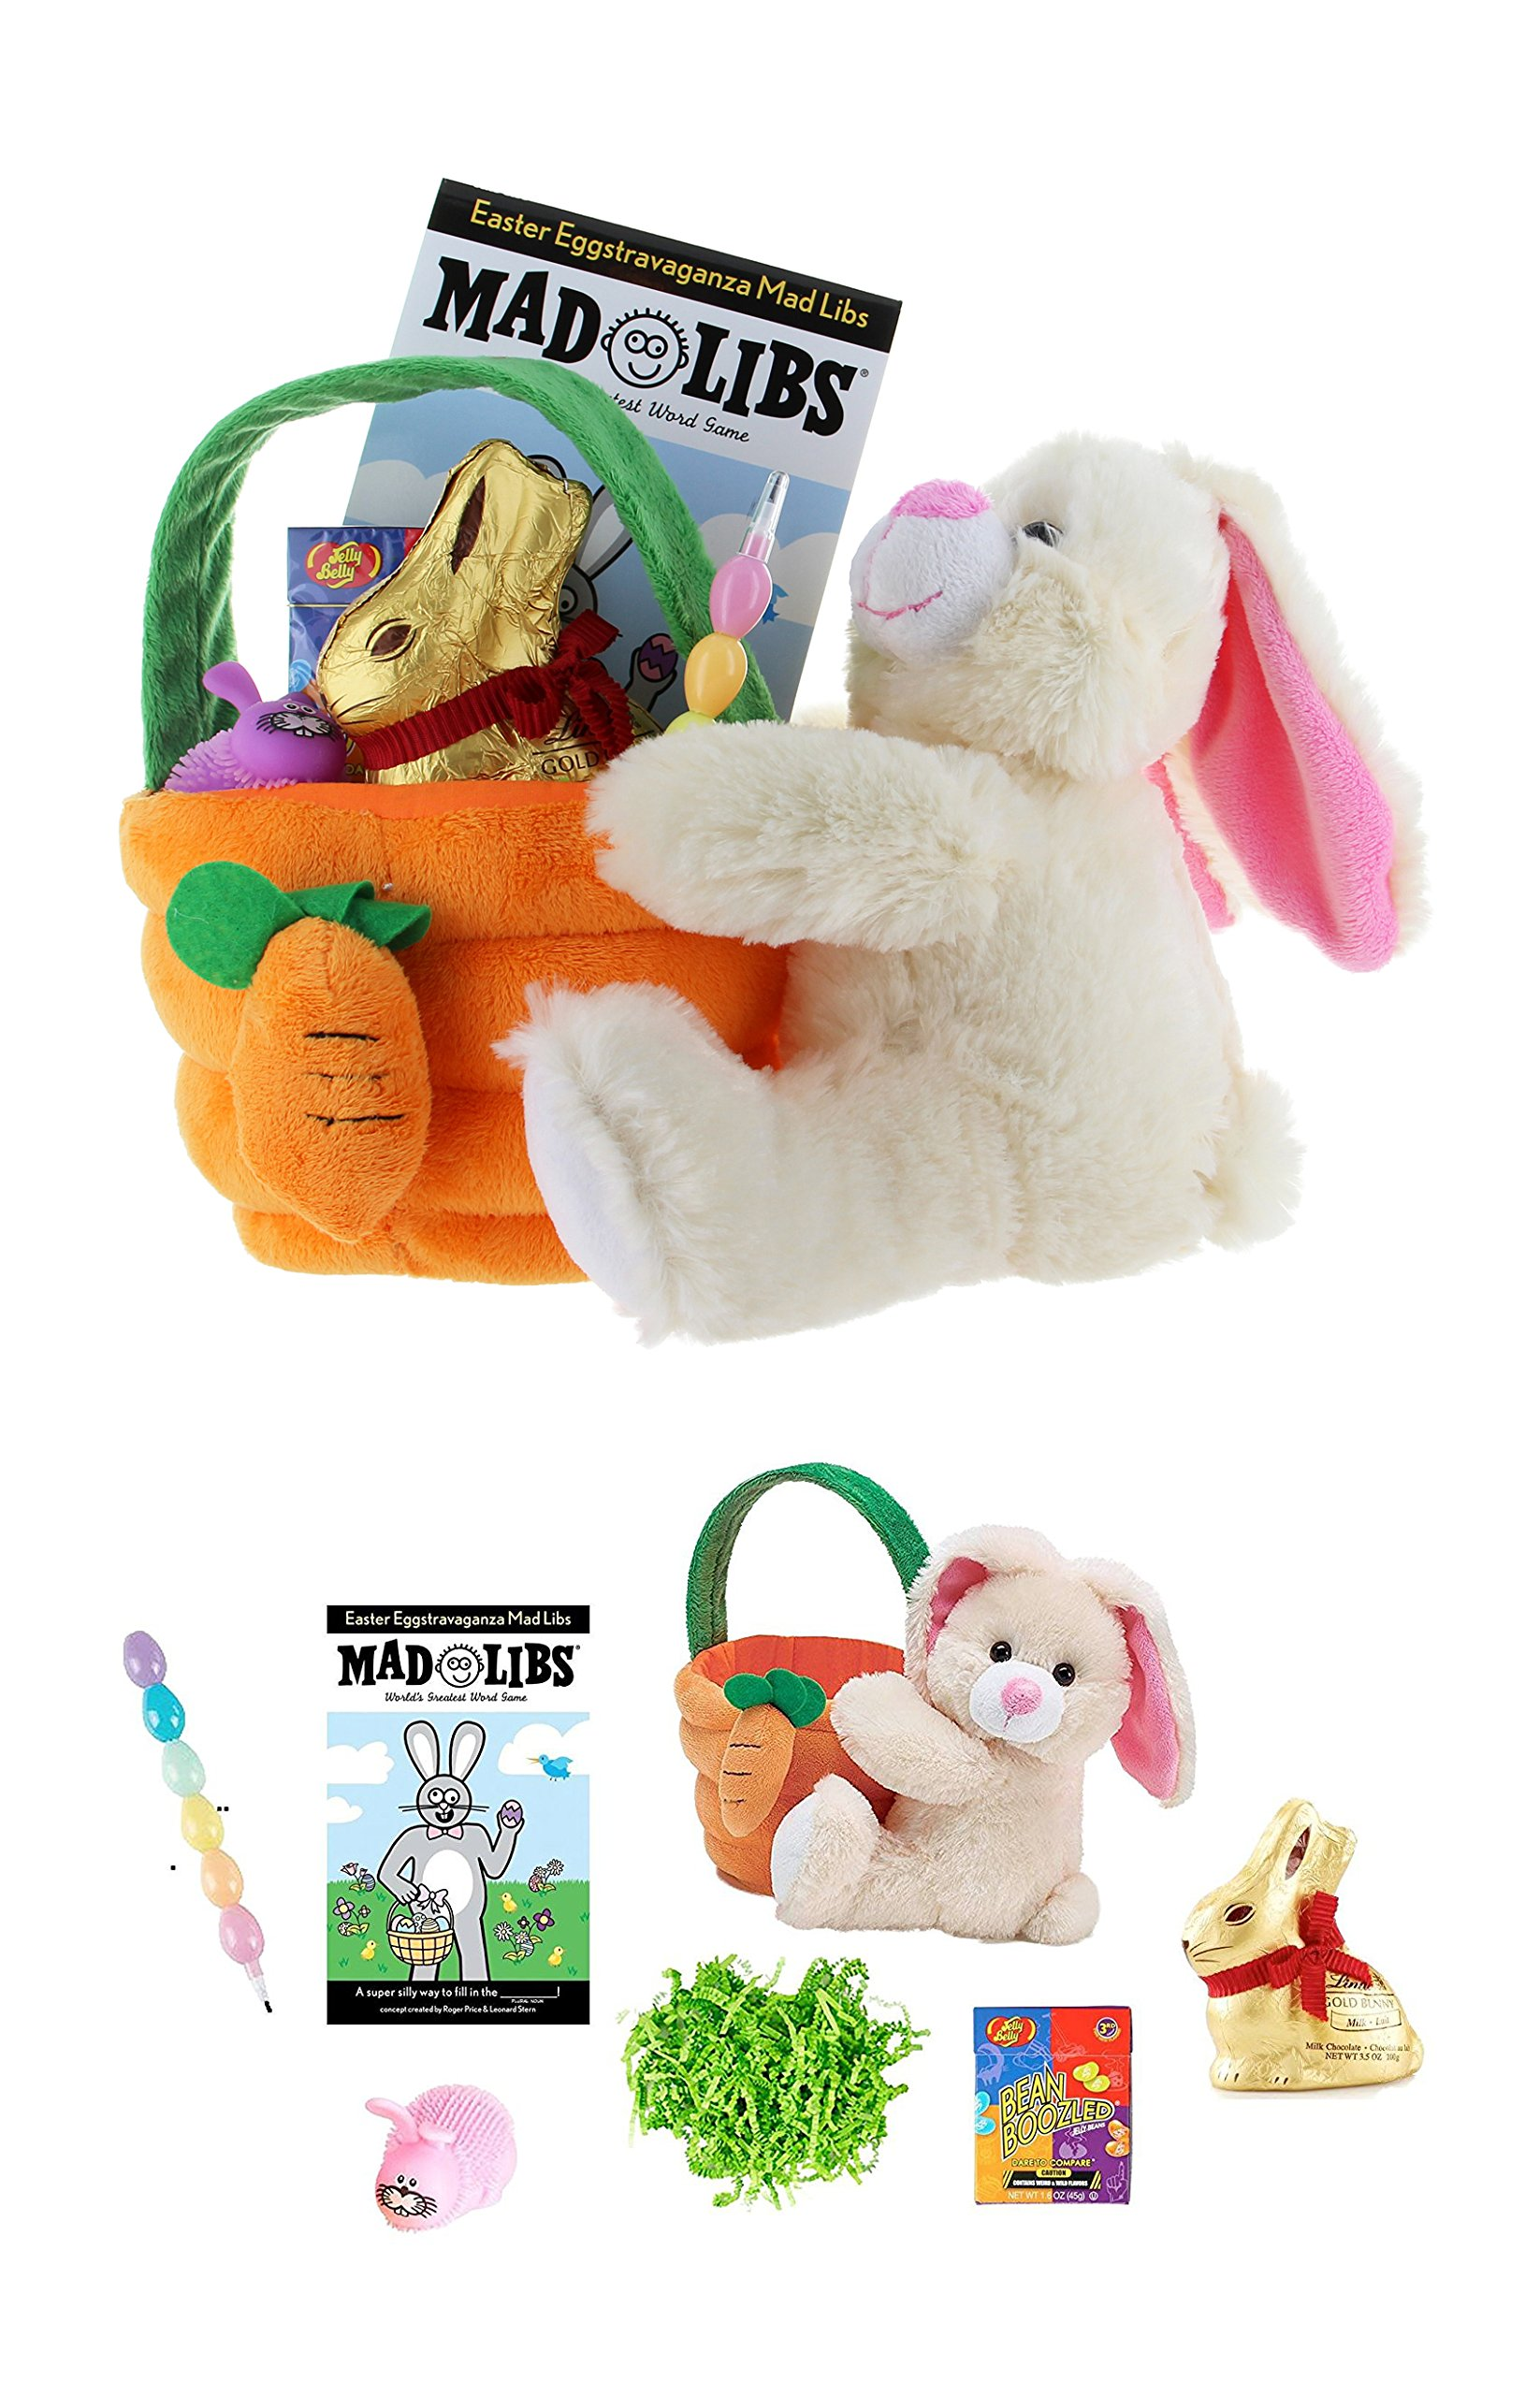 "Plush Bunny 10"" Easter Basket, Ready to Gift: Mad Libs, Lindt Gold Bunny, Egg Pencils, Puffer Toy, Bean Boozled Jelly Beans"